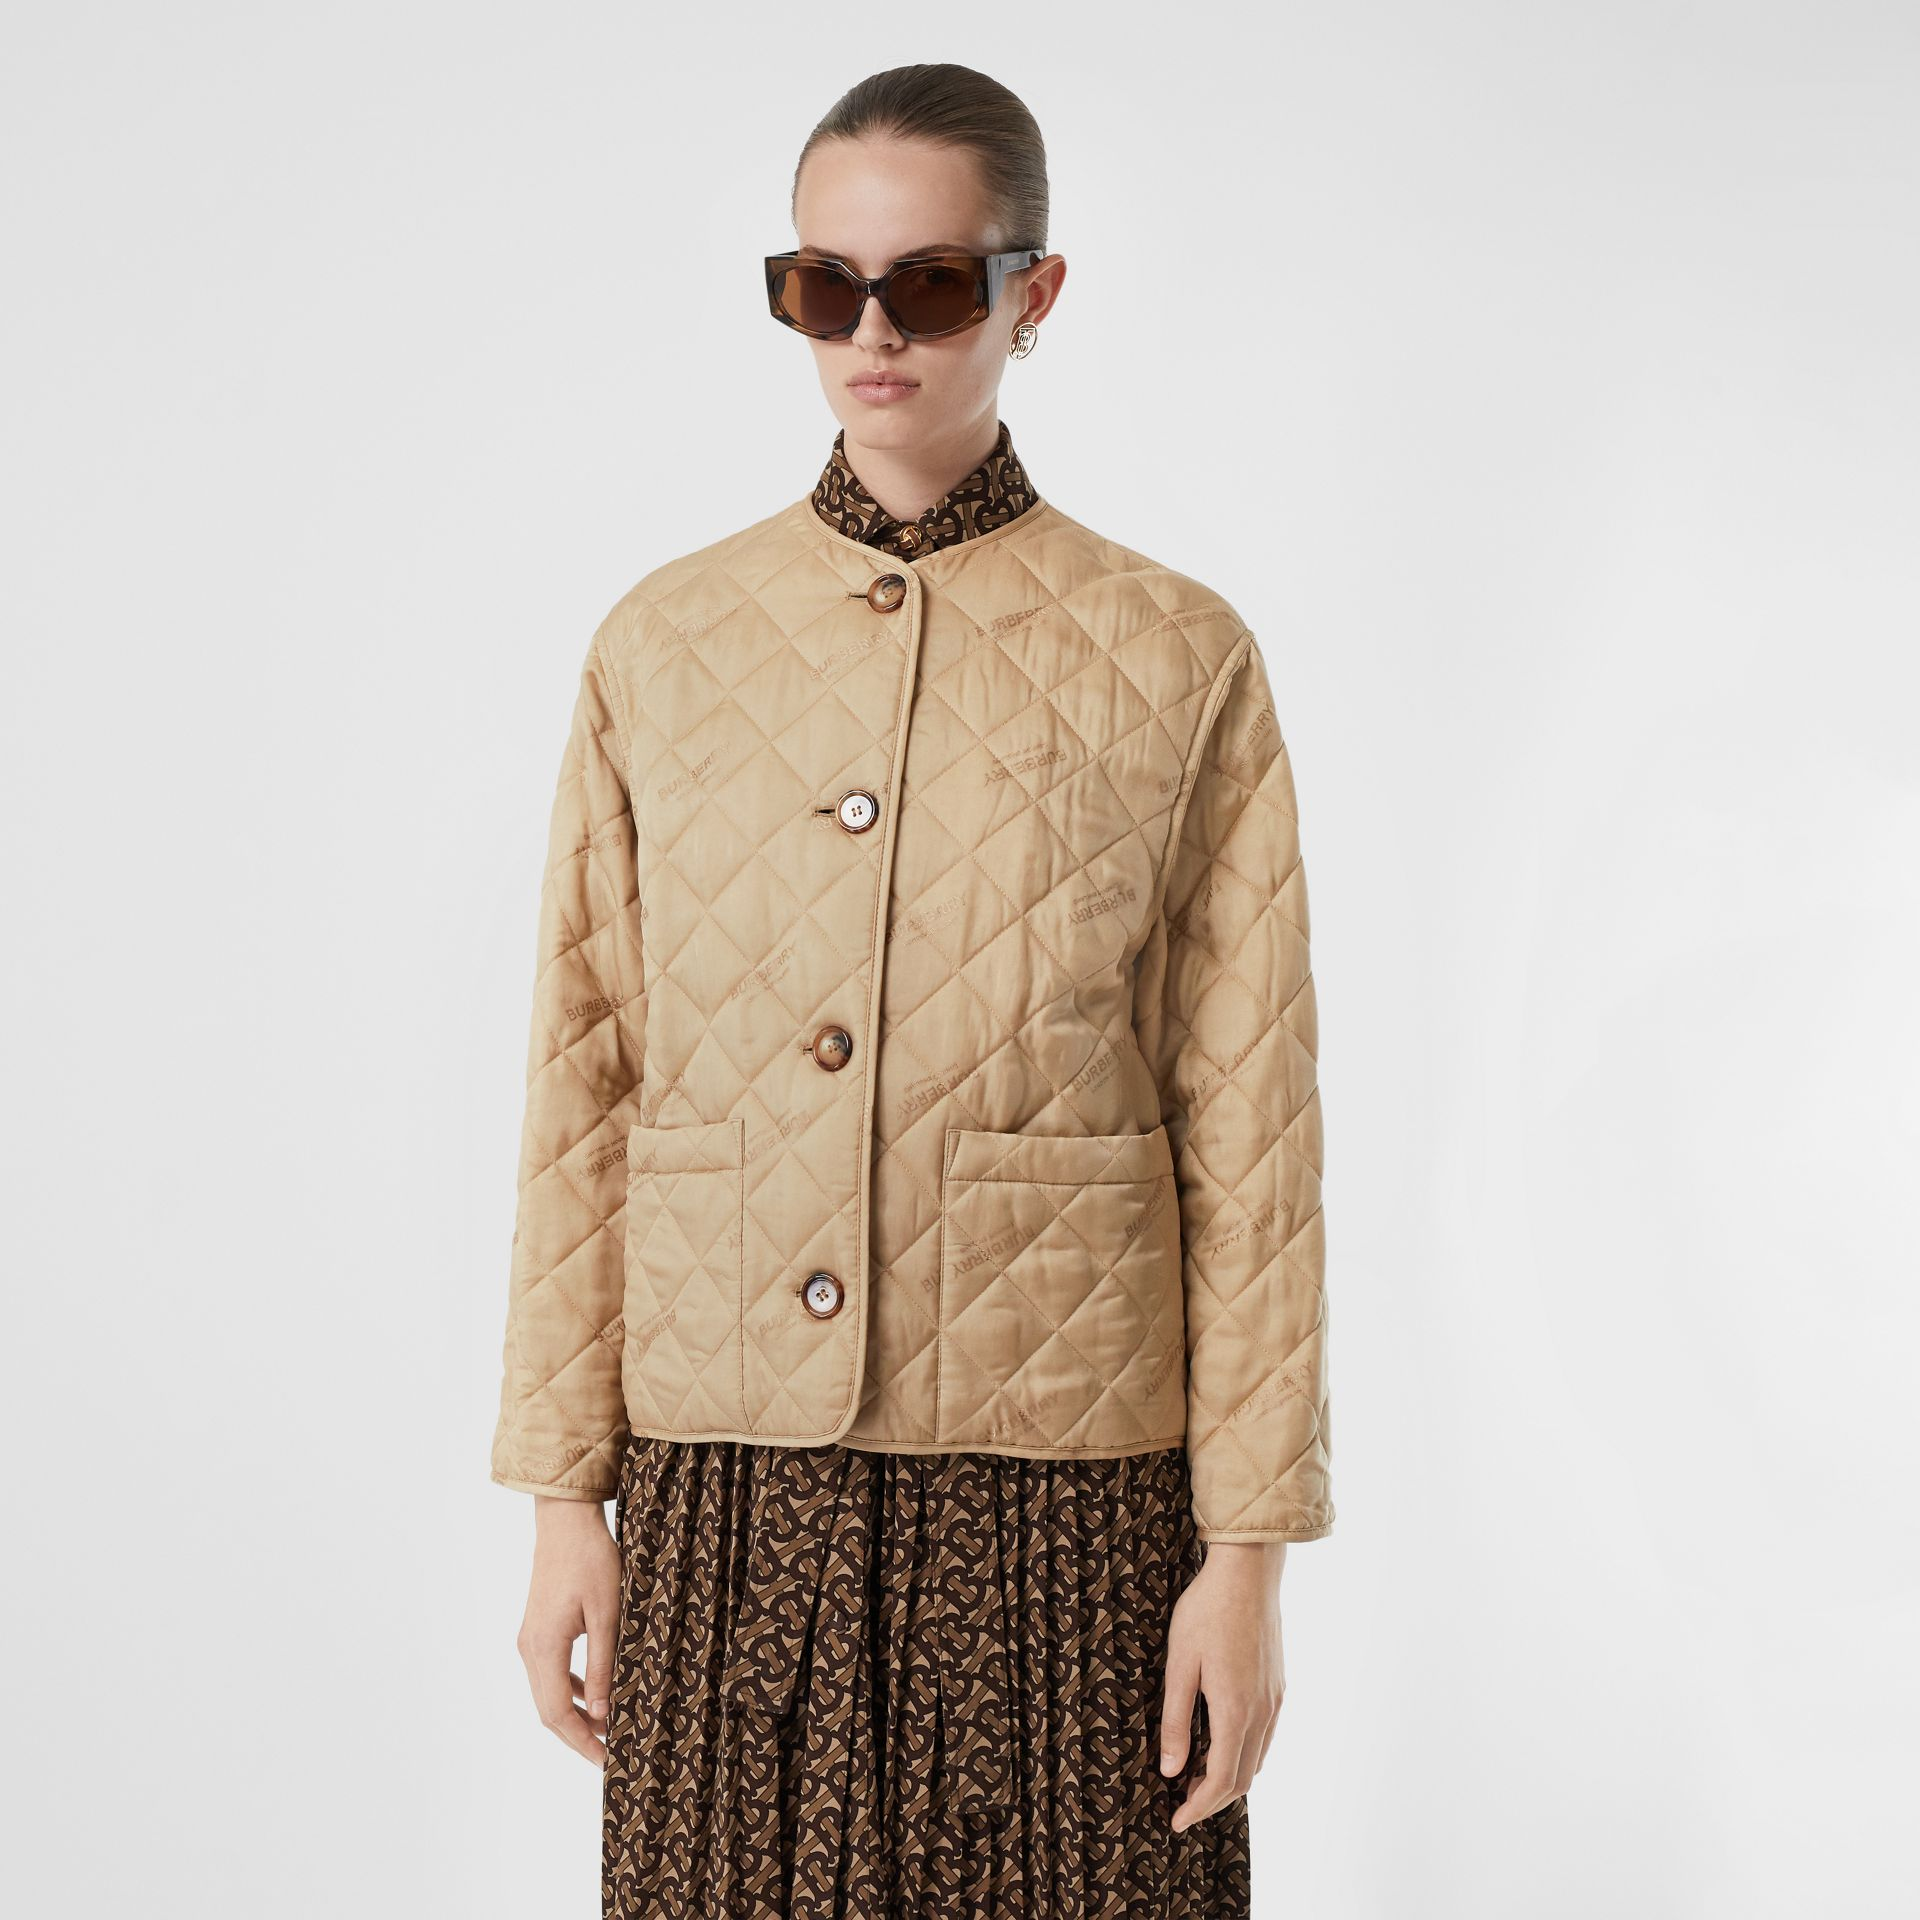 Logo Jacquard Diamond Quilted Jacket in Ecru - Women | Burberry Singapore - gallery image 5